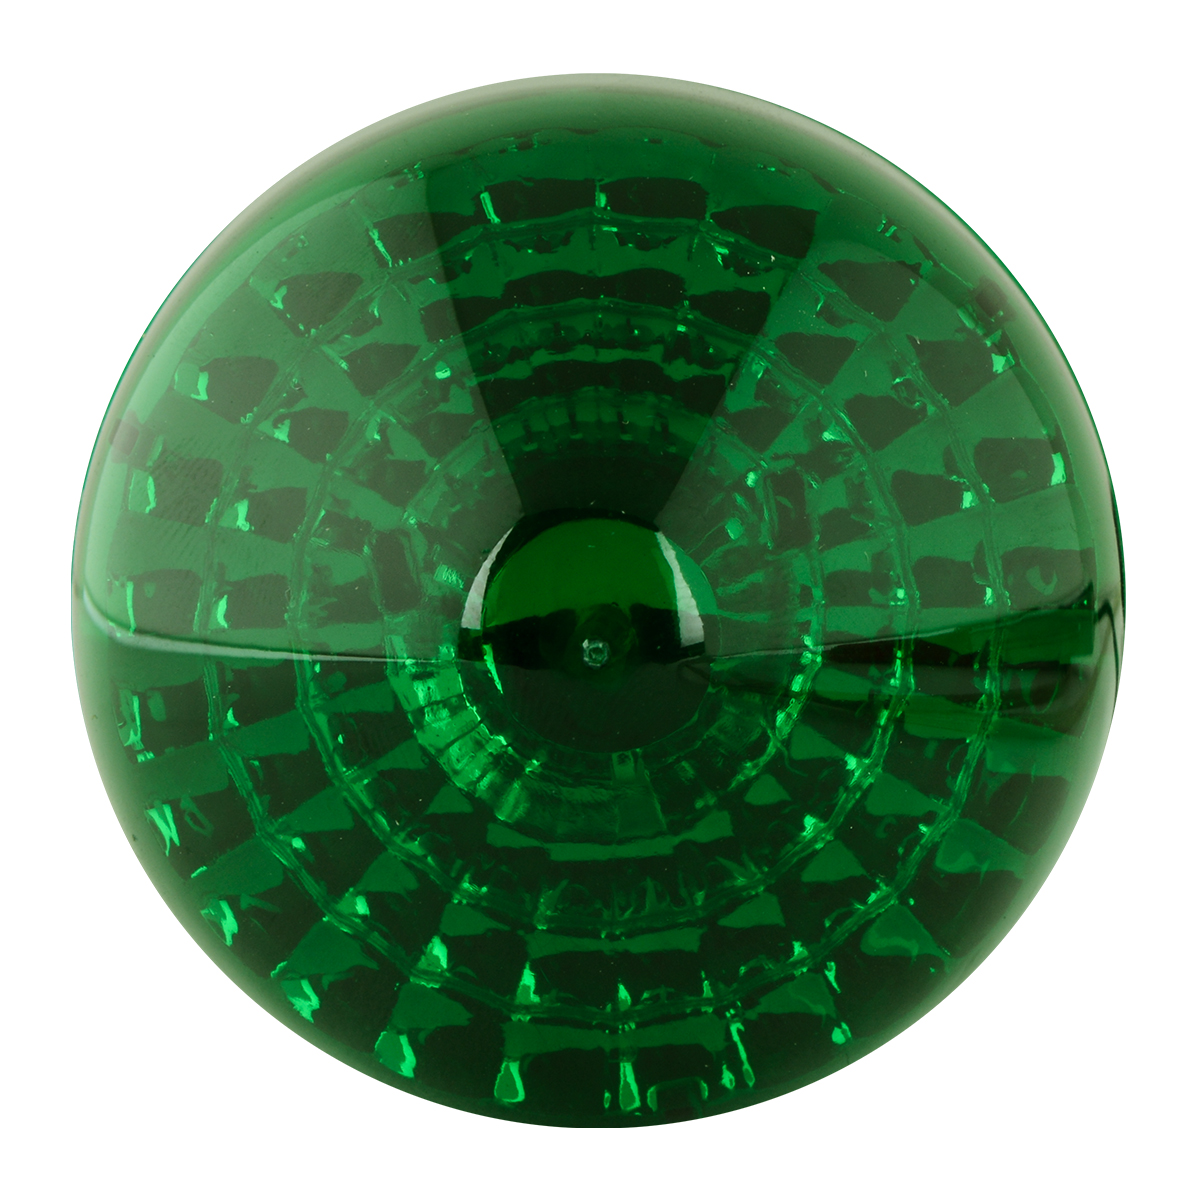 "78492 2"" Beehive Spyder LED Marker Light in Green/Green"